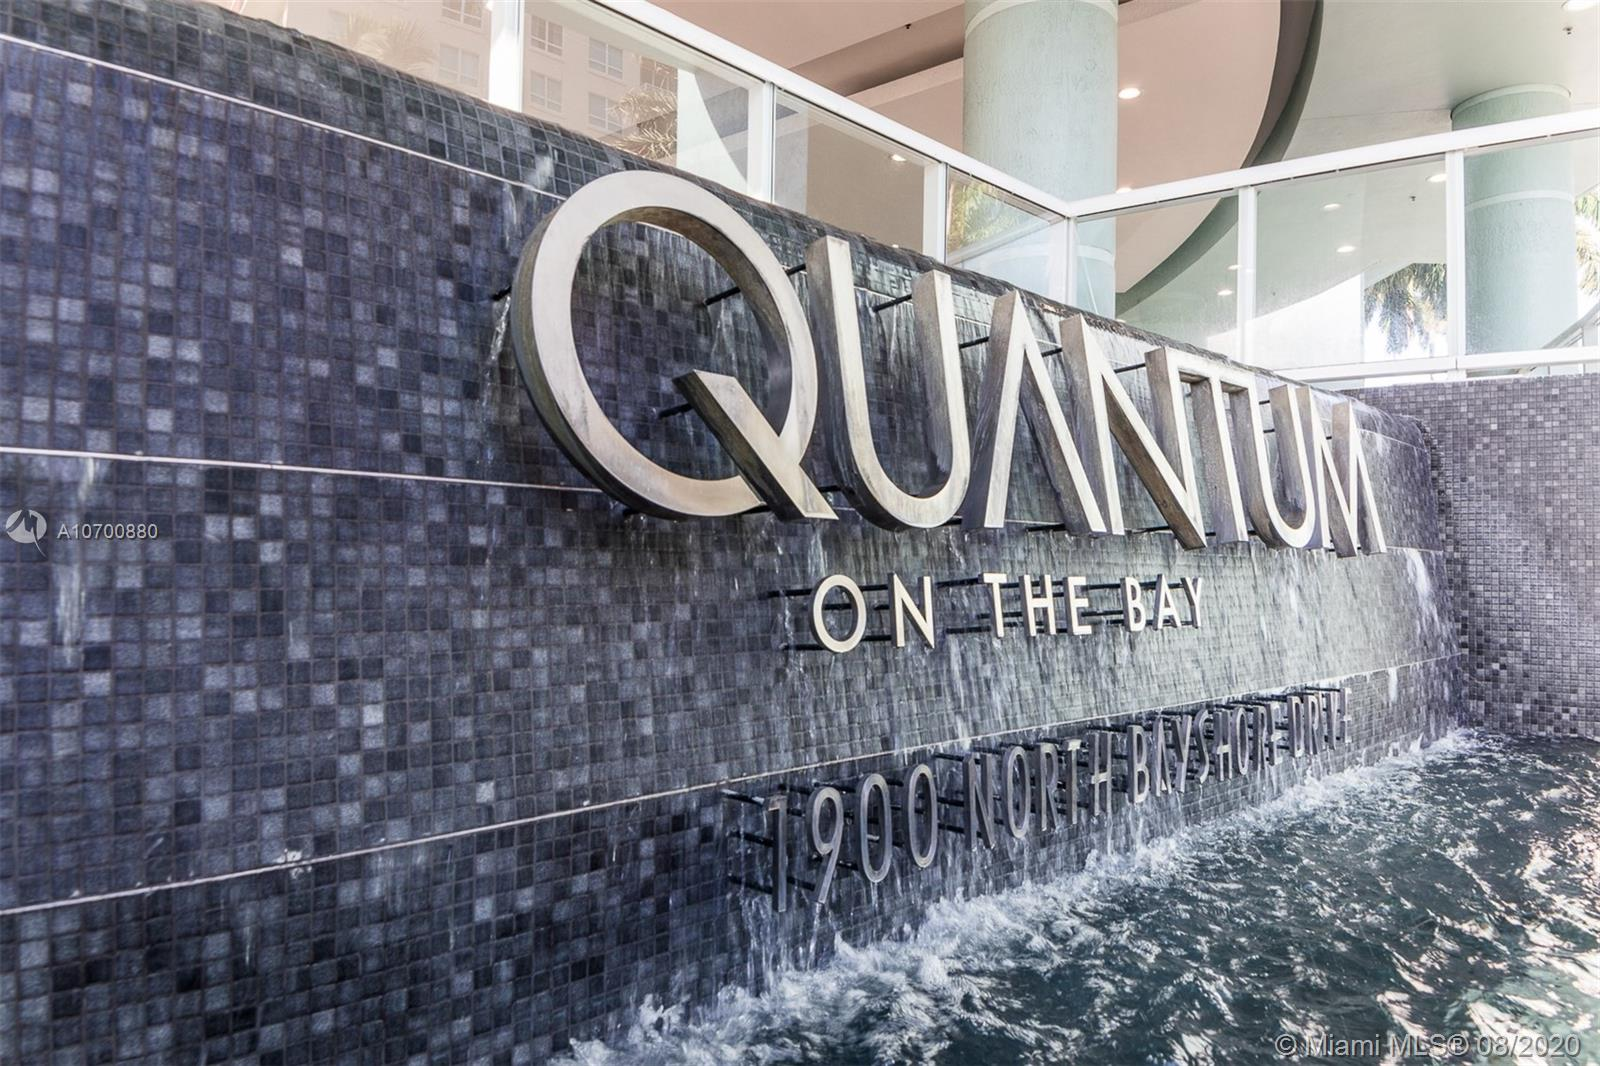 Quantum on the Bay #512 - 1900 N bayshore #512, Miami, FL 33132